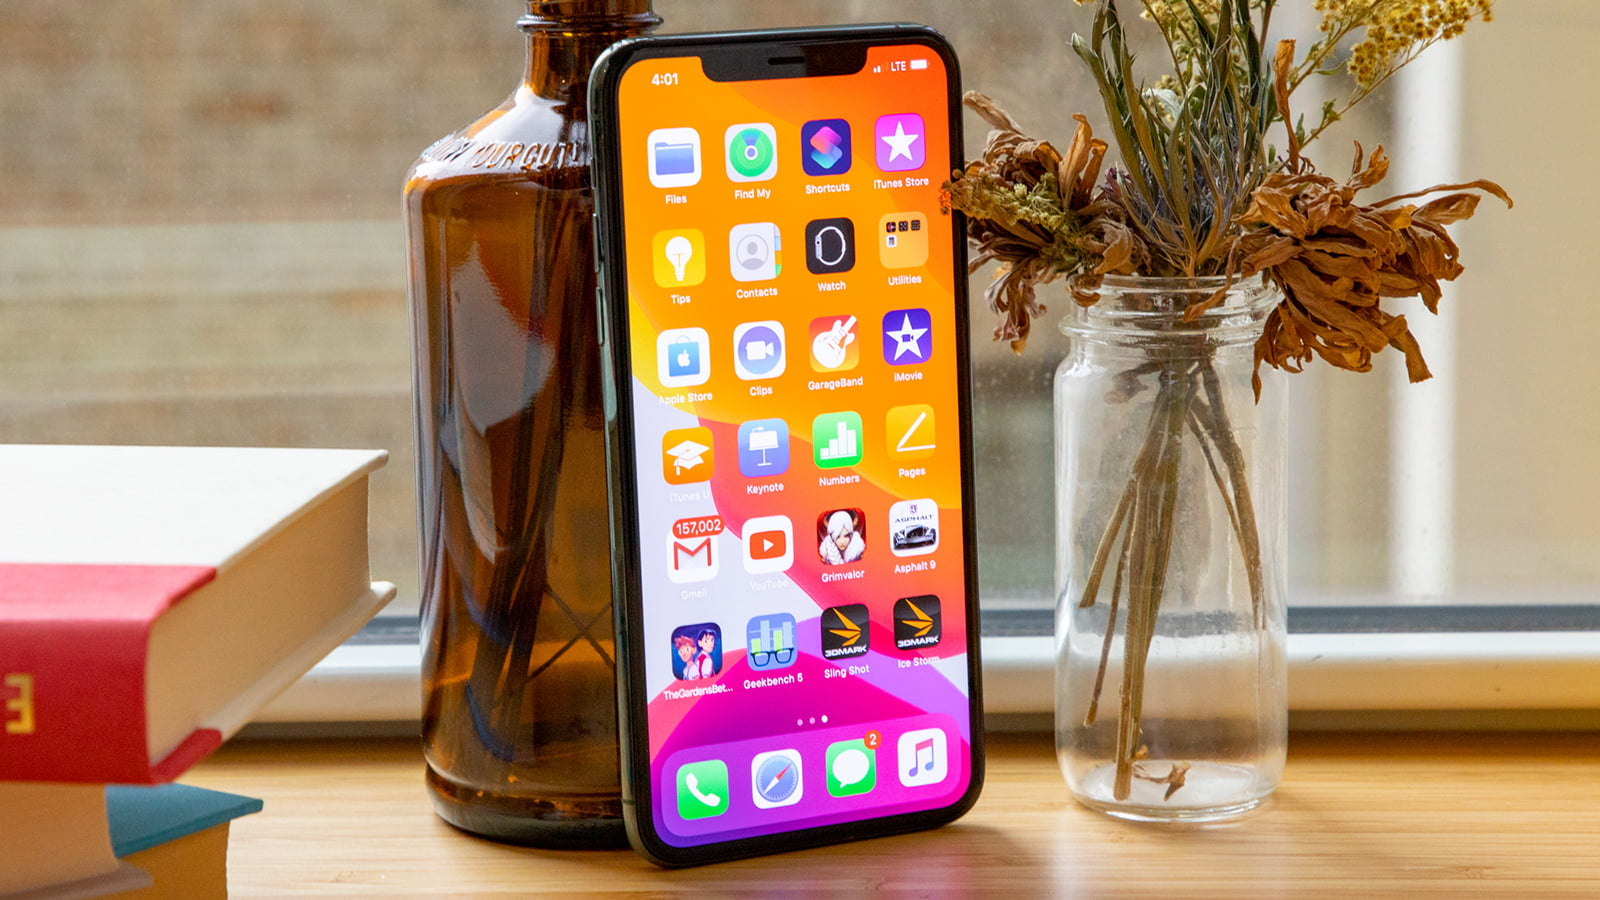 The new iPhone could arrive around June 21st